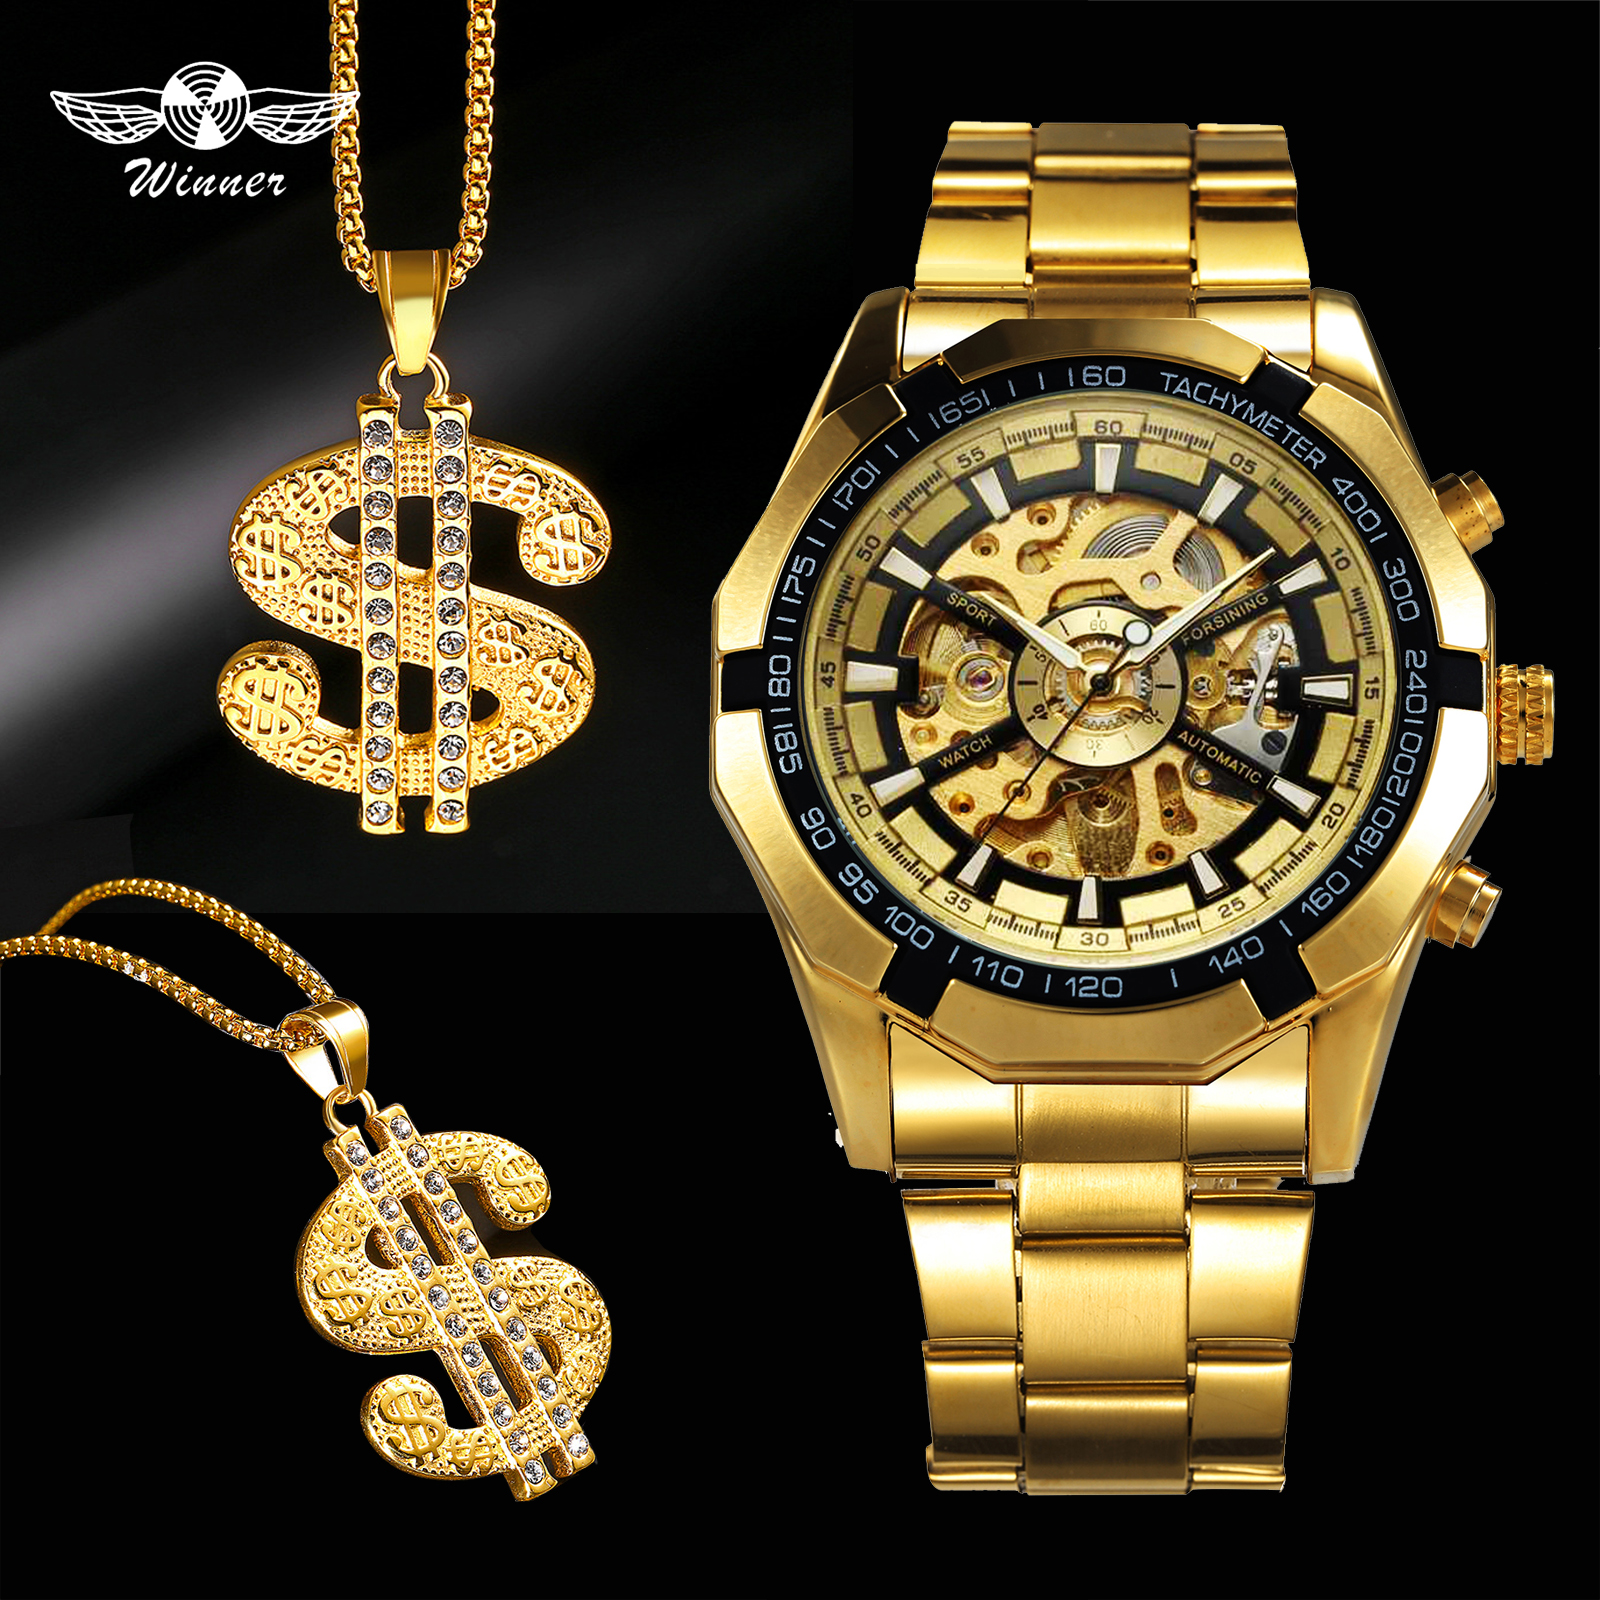 WINNER Punk Watch Men Skeleton Auto Mechanical Mens Watches Top Brand Luxury Jewelry Set + Hip Hop Iced Out Golden NecklaceWINNER Punk Watch Men Skeleton Auto Mechanical Mens Watches Top Brand Luxury Jewelry Set + Hip Hop Iced Out Golden Necklace